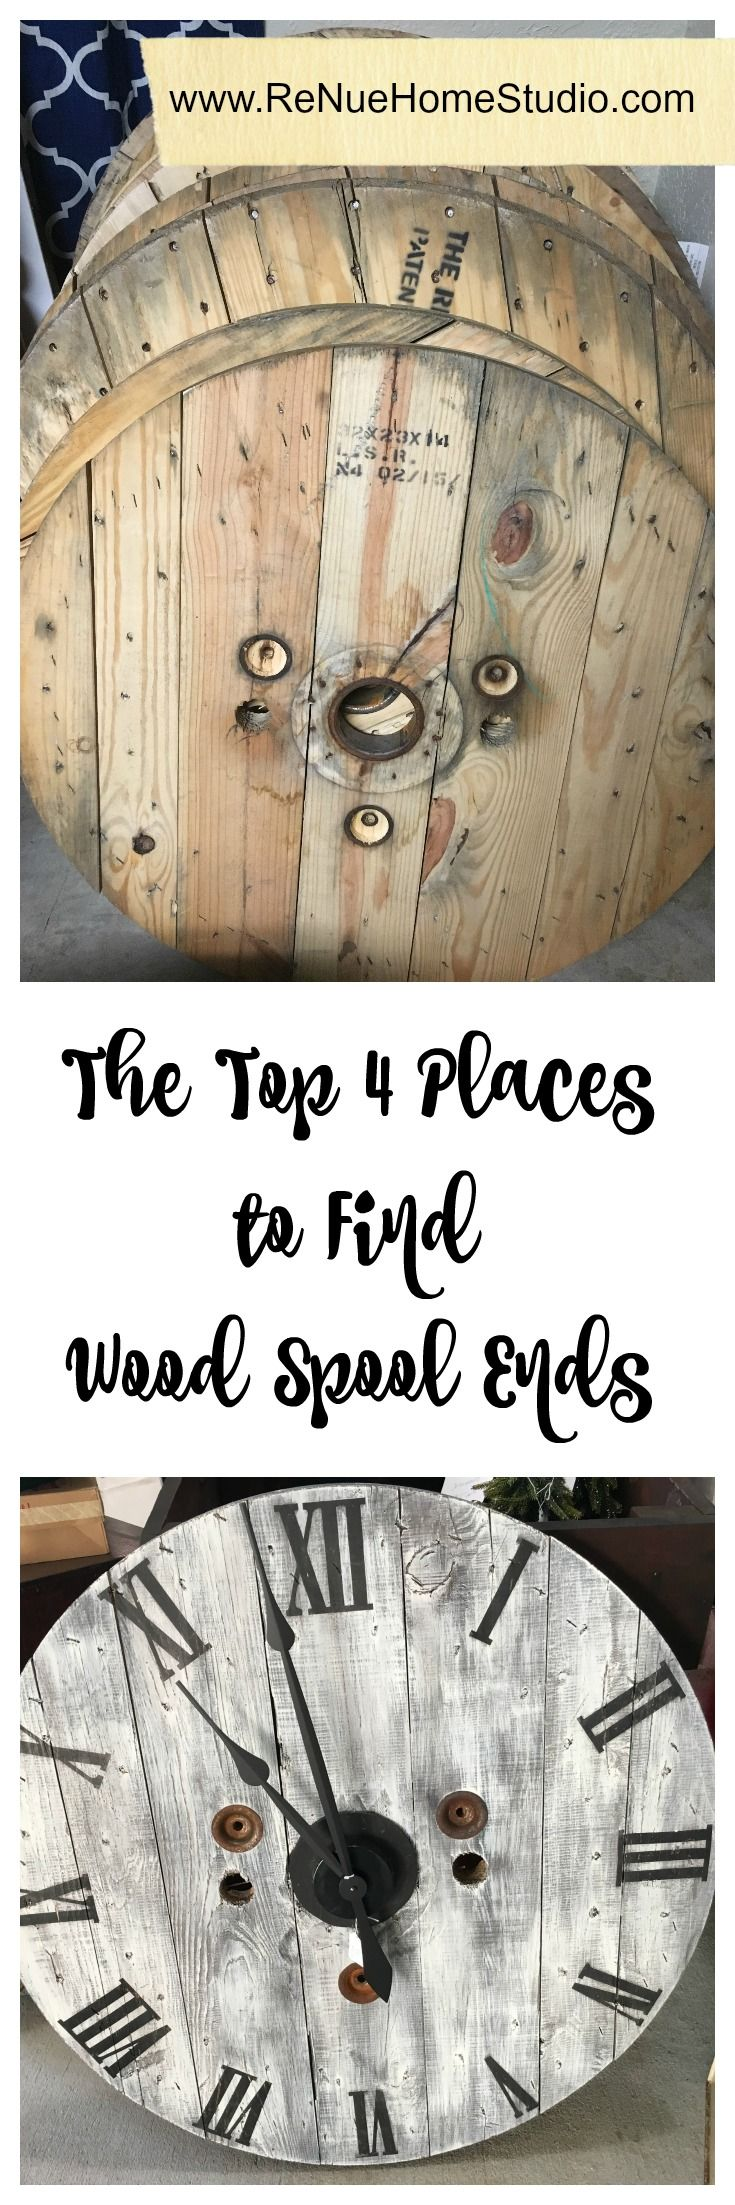 Here's our Top 4 Places to Find Wood Spool Ends for your DIY Projects.   Spool Clocks, Spool Table, Wire Spool, Cable Spool, Do It Yourself, Tutorial, Craigslist, Facebook, Pinterest